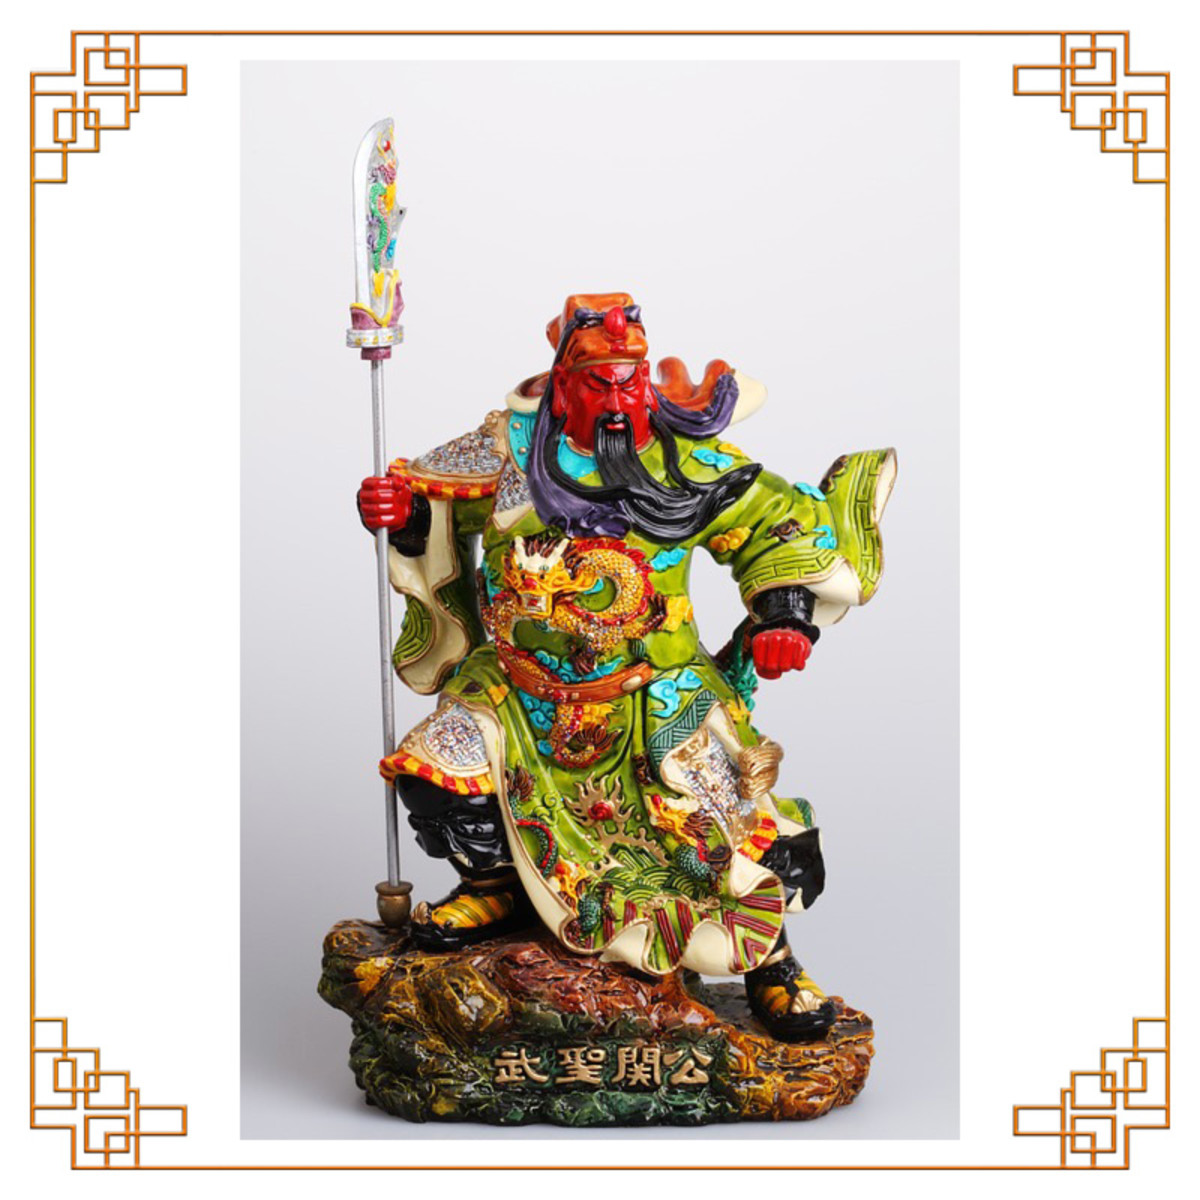 Statue of Guan Gong. A Chinese cultural representation of justice and honor.